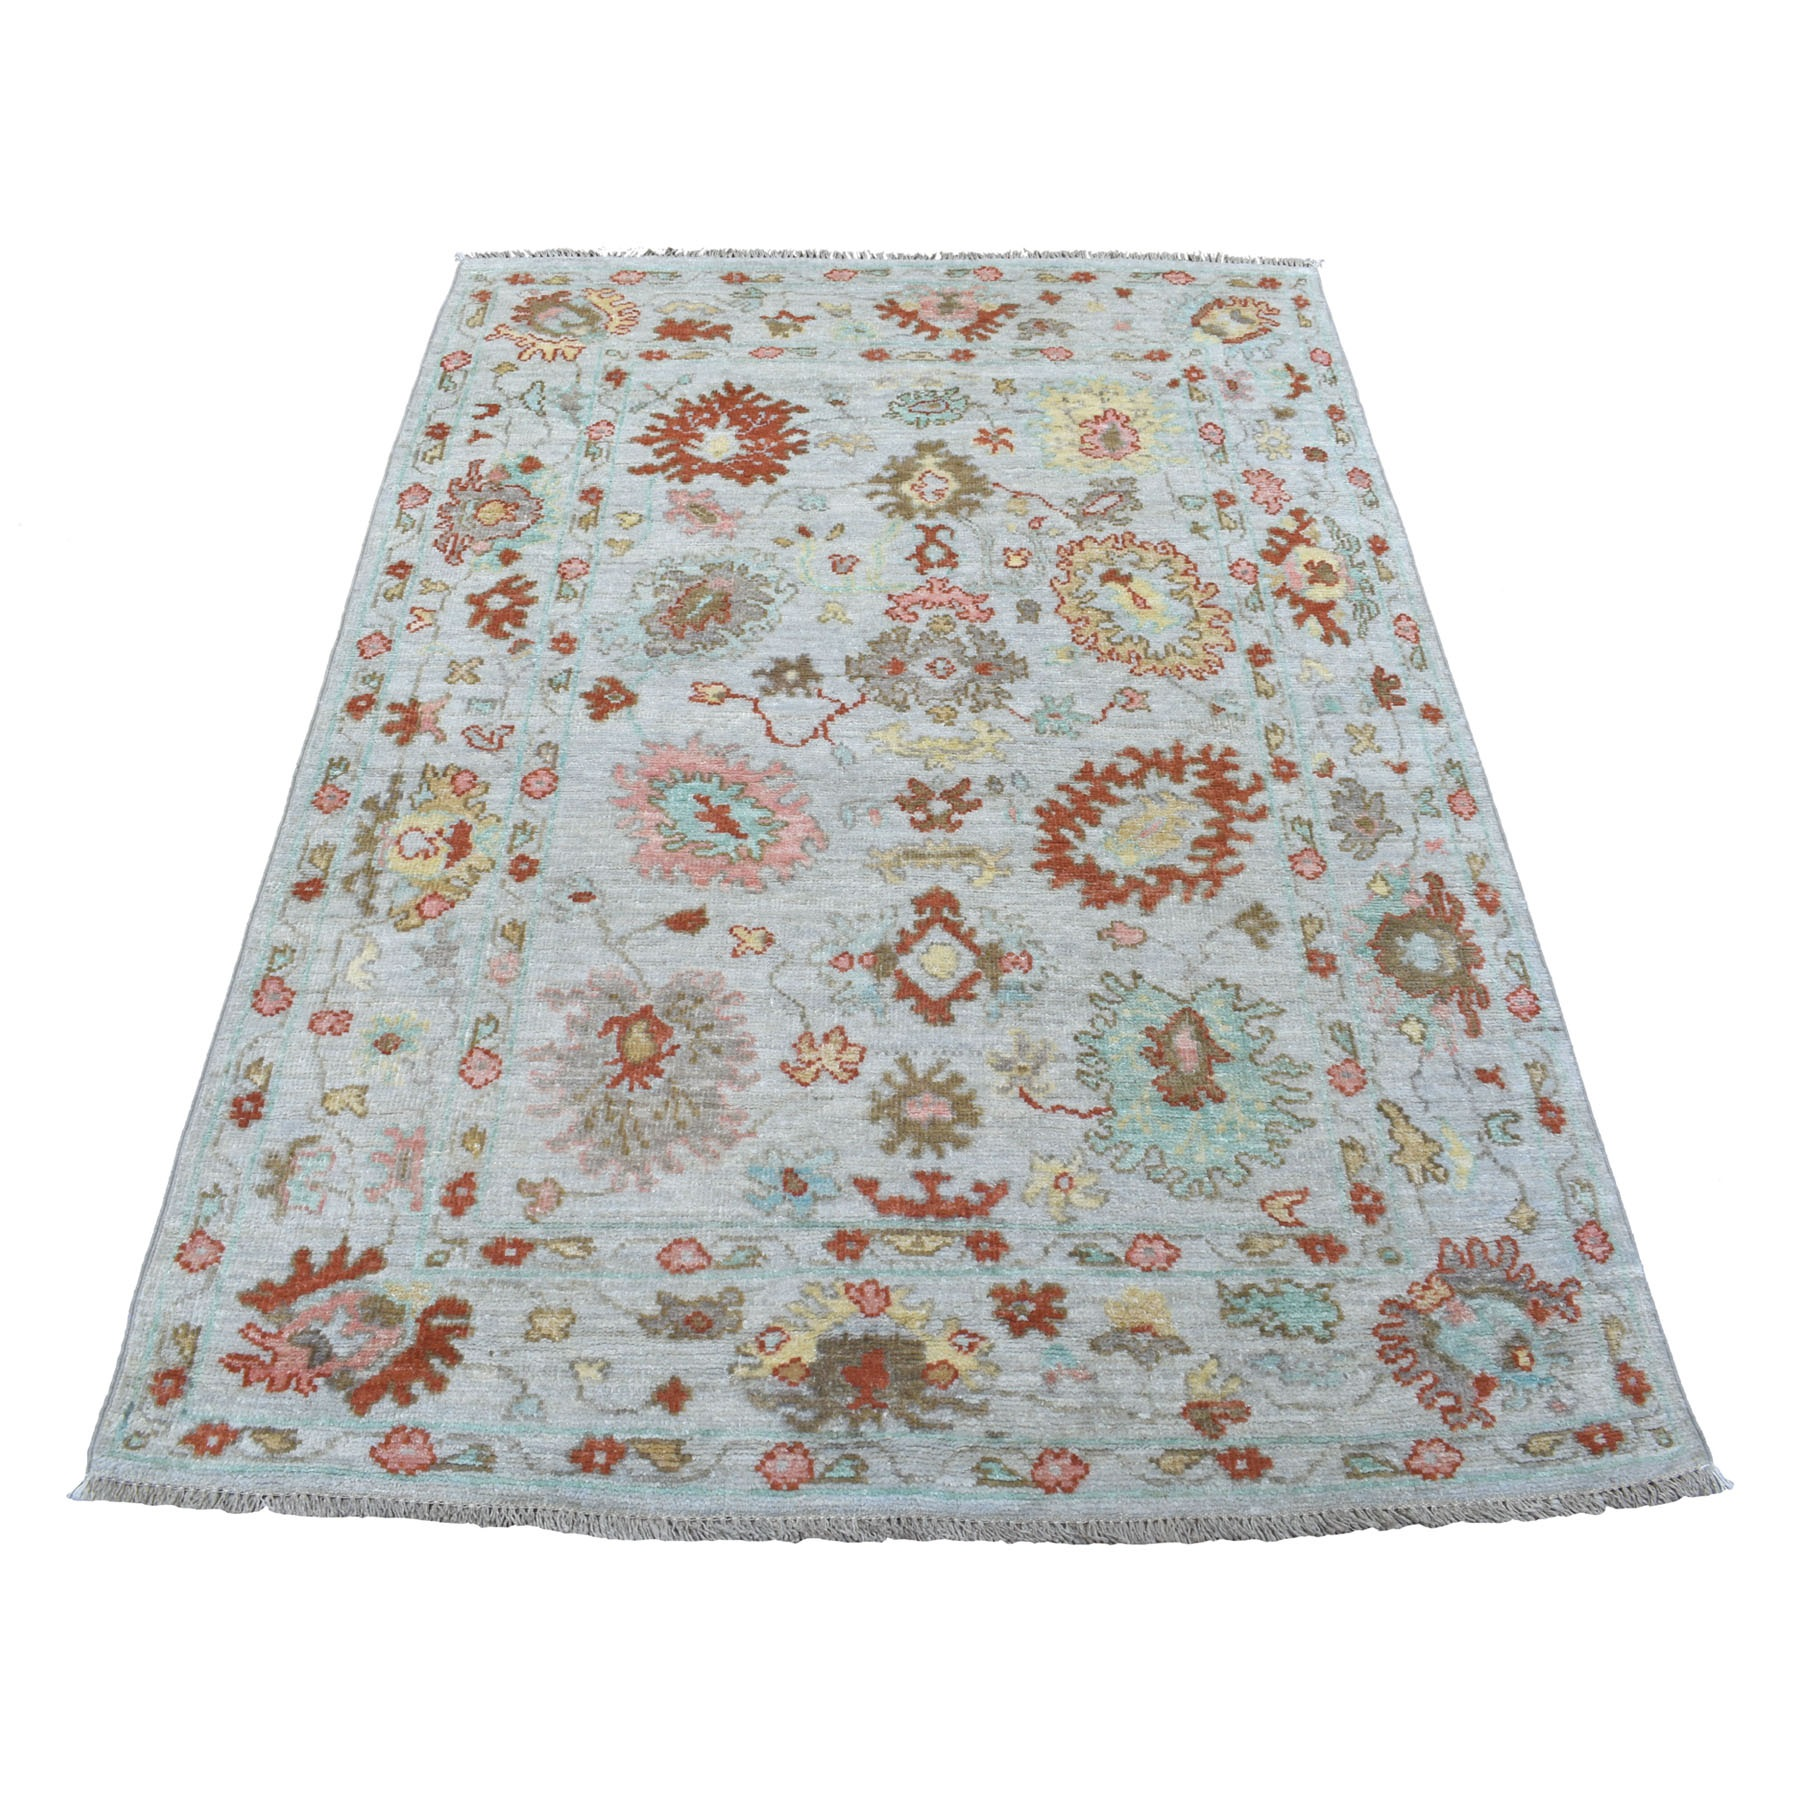 4'x6' Monochromatic Gray With Pop Of Color Angora Oushak Shiny Wool Hand Knotted Oriental Rug